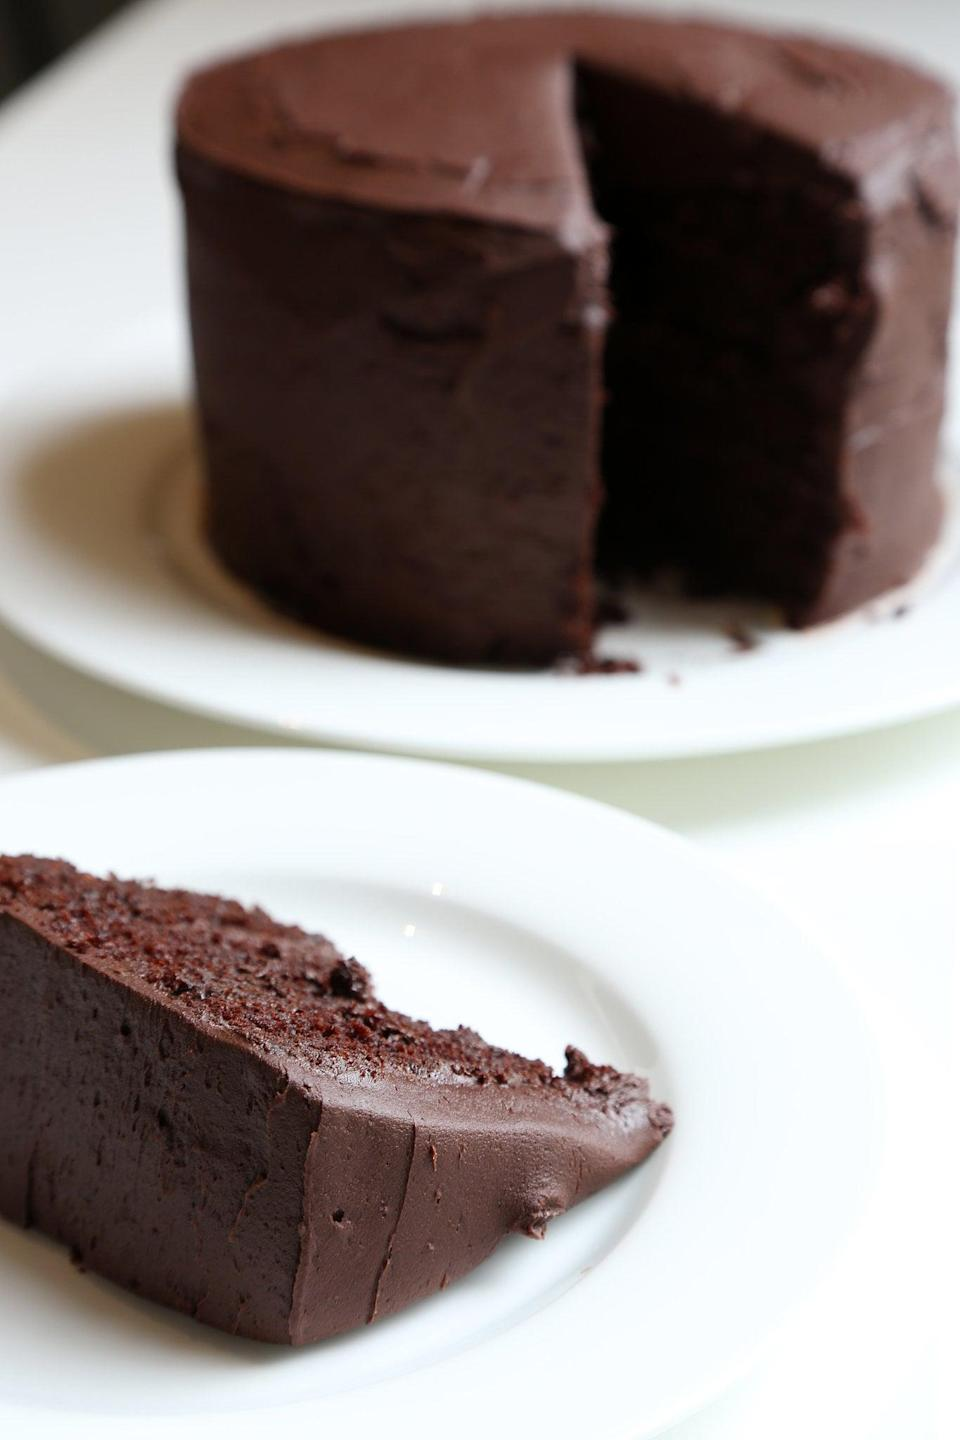 "<p>Imagine: a chocolate cake with chocolate buttercream frosting. Yup, that's what you get when you make this moist, almost fudge-like delicacy. Due to the addition of cocoa powder, this treat isn't too tooth-achingly sweet, but also not too bitter and dark either - aka the best of both worlds.</p> <p><strong>Get the recipe</strong>: <a href=""https://www.popsugar.com/food/Chocolate-Cake-Chocolate-Buttercream-Recipe-34247299"" class=""link rapid-noclick-resp"" rel=""nofollow noopener"" target=""_blank"" data-ylk=""slk:chocolate cake"">chocolate cake</a></p>"